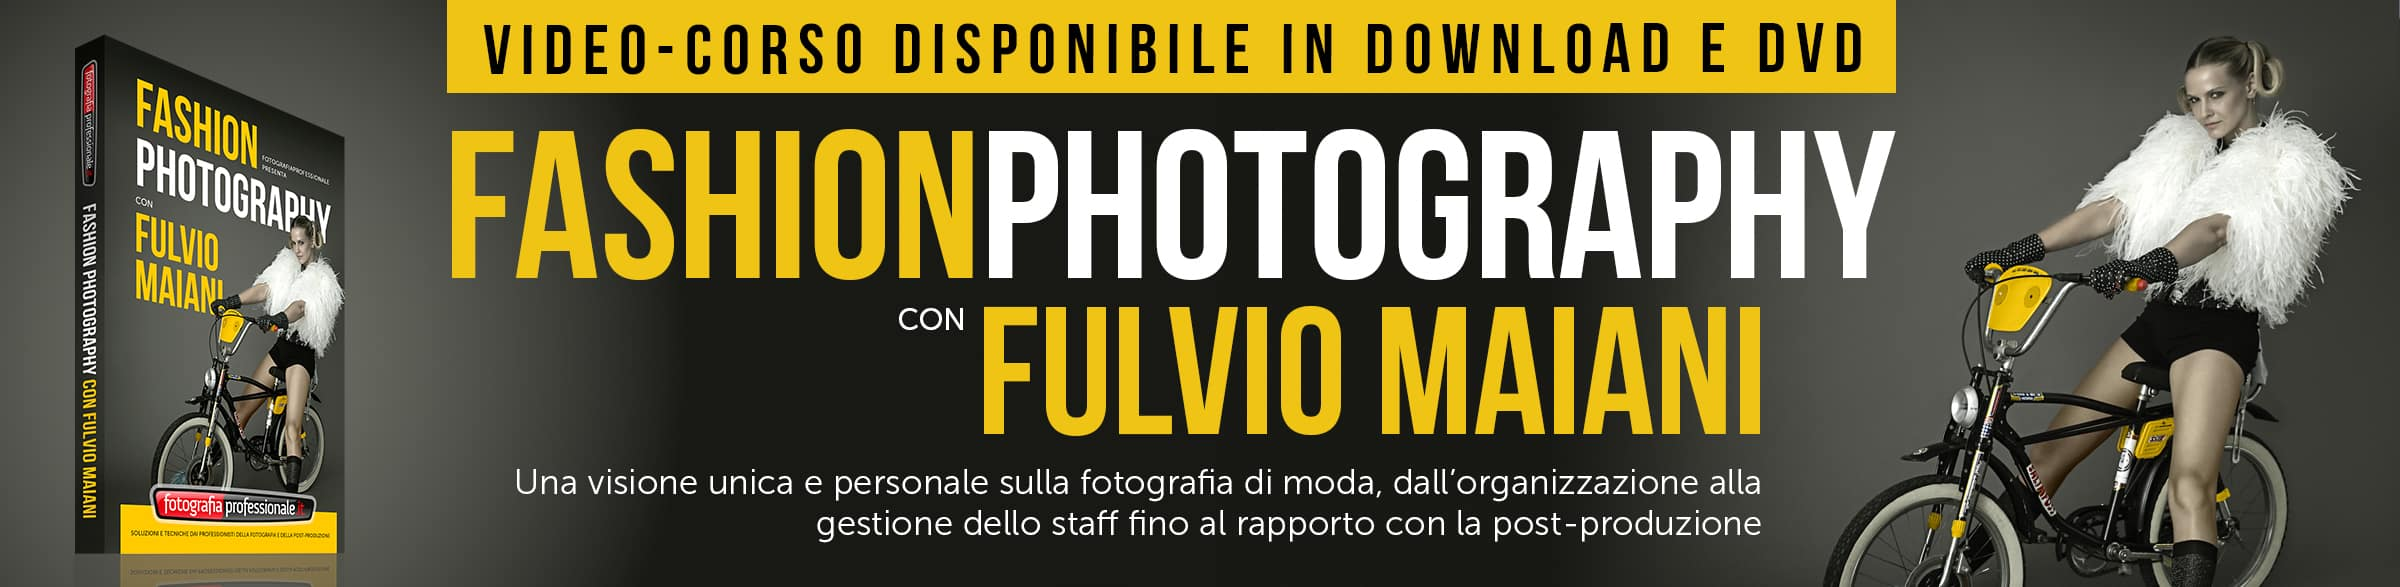 """Fashion Photography con Fulvio Maiani"" - Video-corso di FotografiaProfessionale"